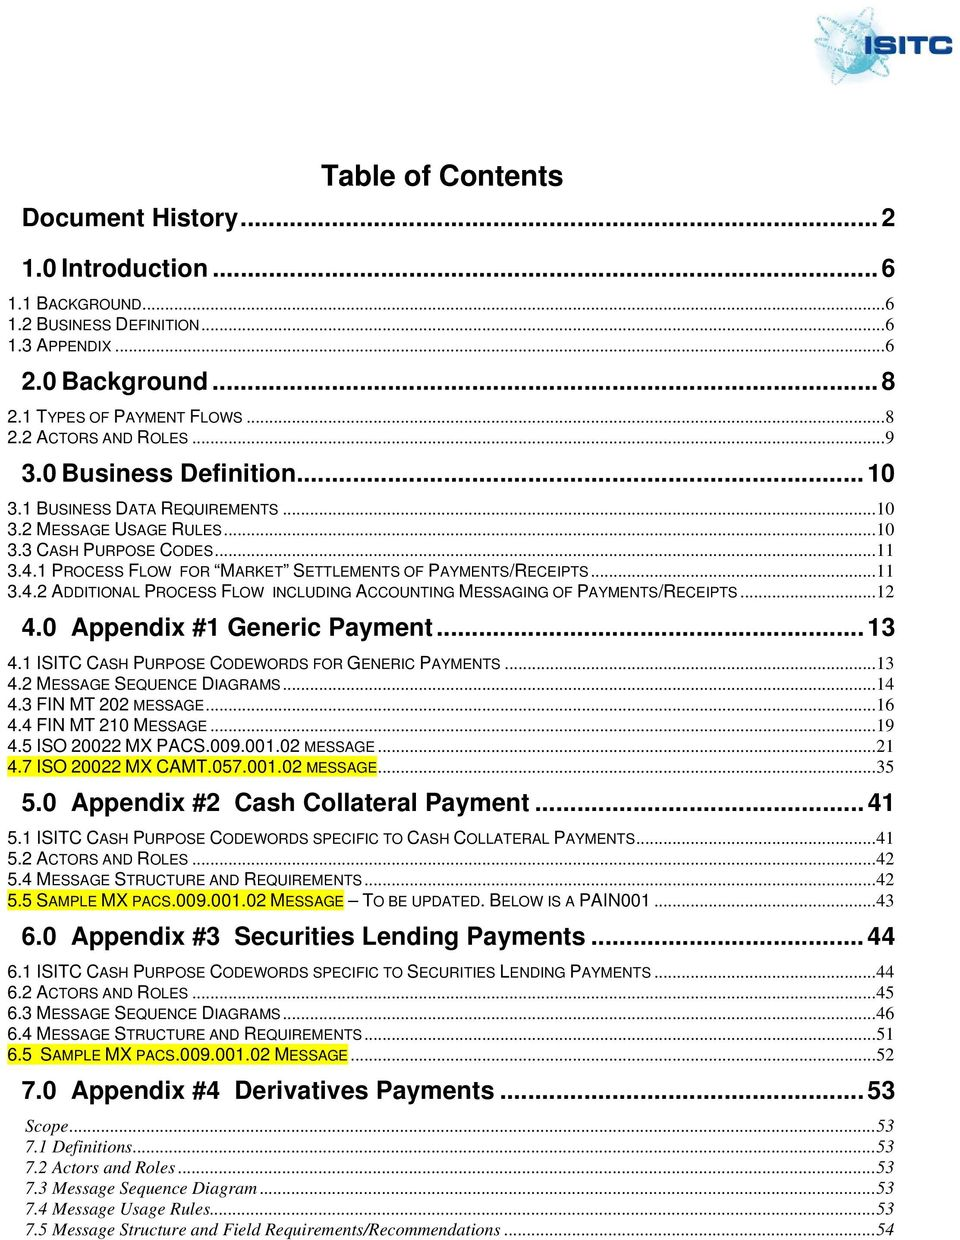 1 PROCESS FLOW FOR MARKET SETTLEMENTS OF PAYMENTS/RECEIPTS... 11 3.4.2 ADDITIONAL PROCESS FLOW INCLUDING ACCOUNTING MESSAGING OF PAYMENTS/RECEIPTS... 12 4.0 Appendix #1 Generic Payment... 13 4.